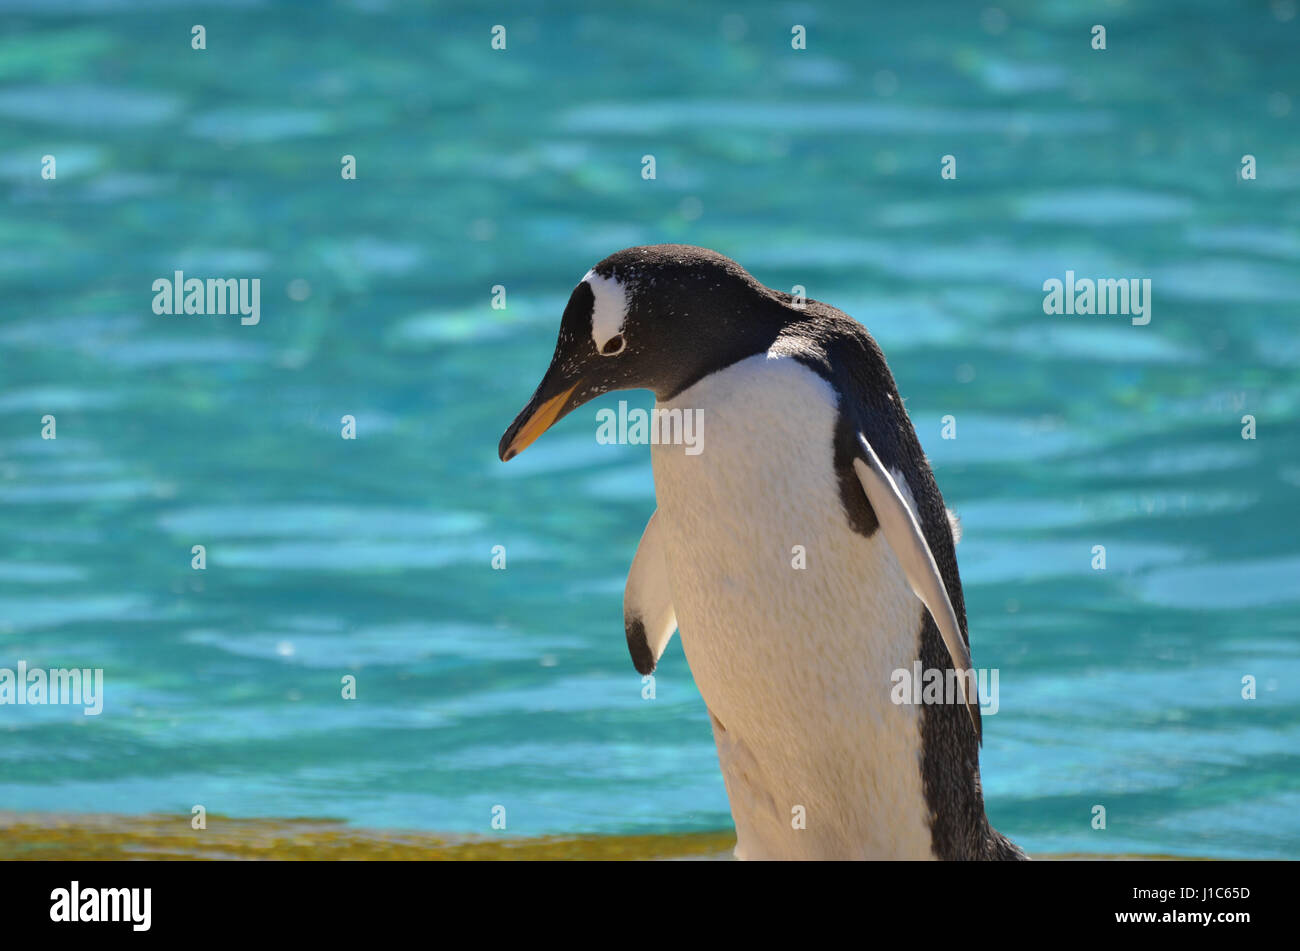 Cute gentoo penguin with water standing behind him. - Stock Image